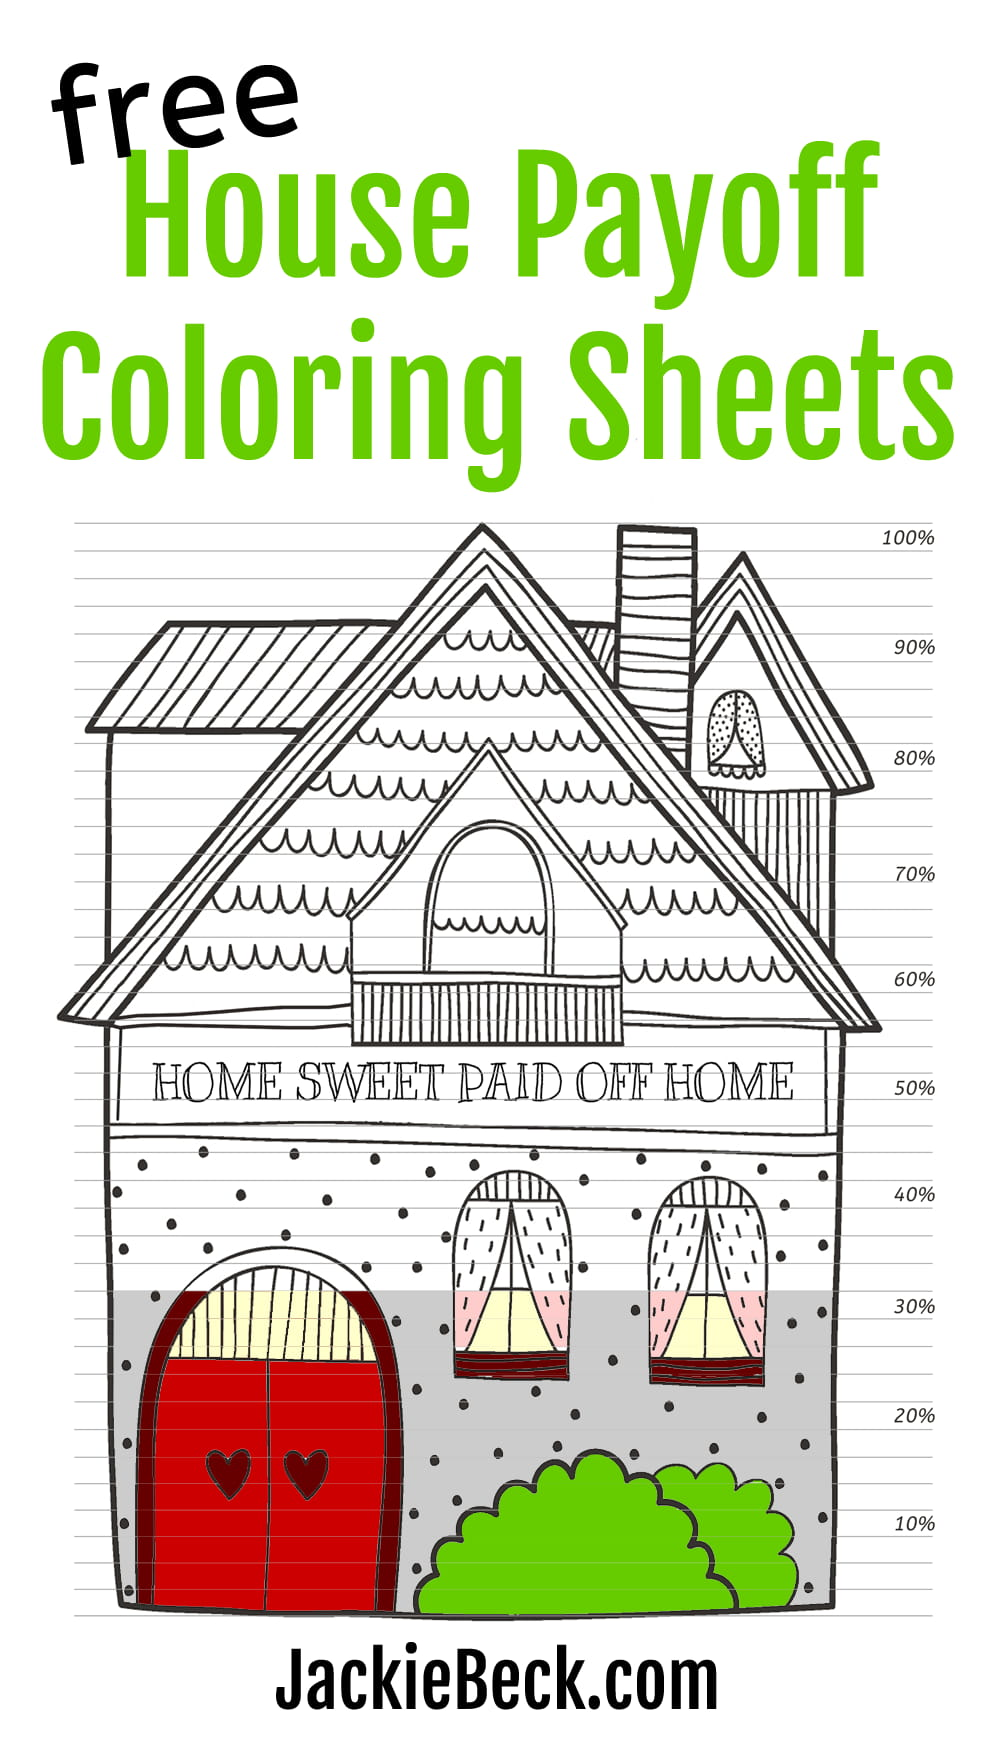 Free house payoff coloring sheets